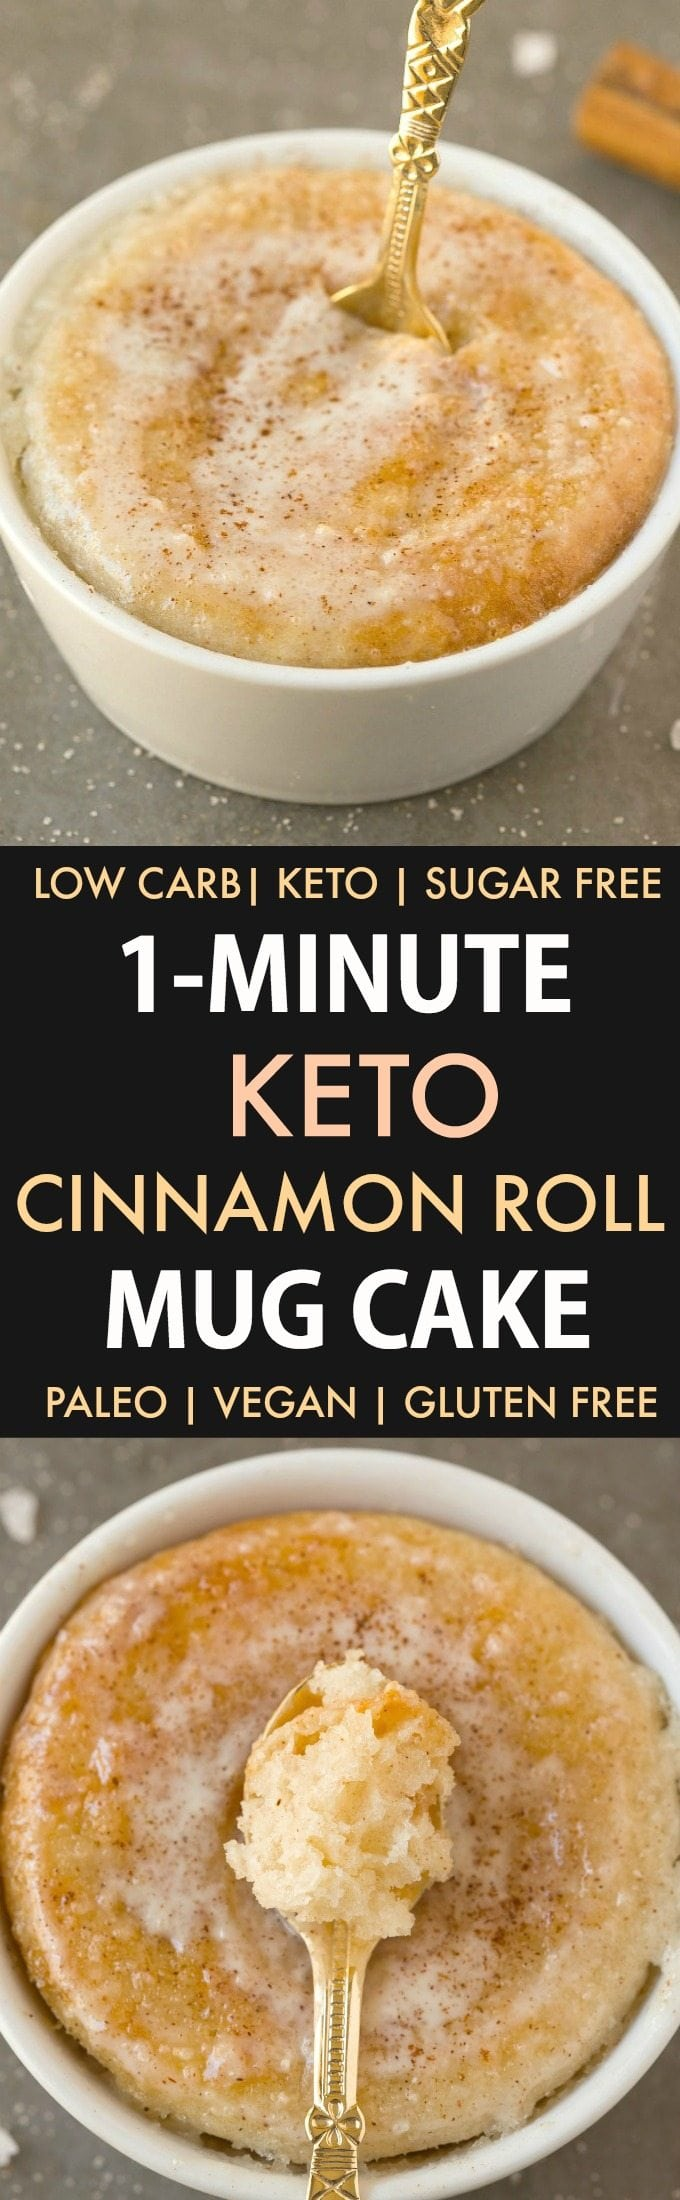 Low Carb Fruit Cake Recipe